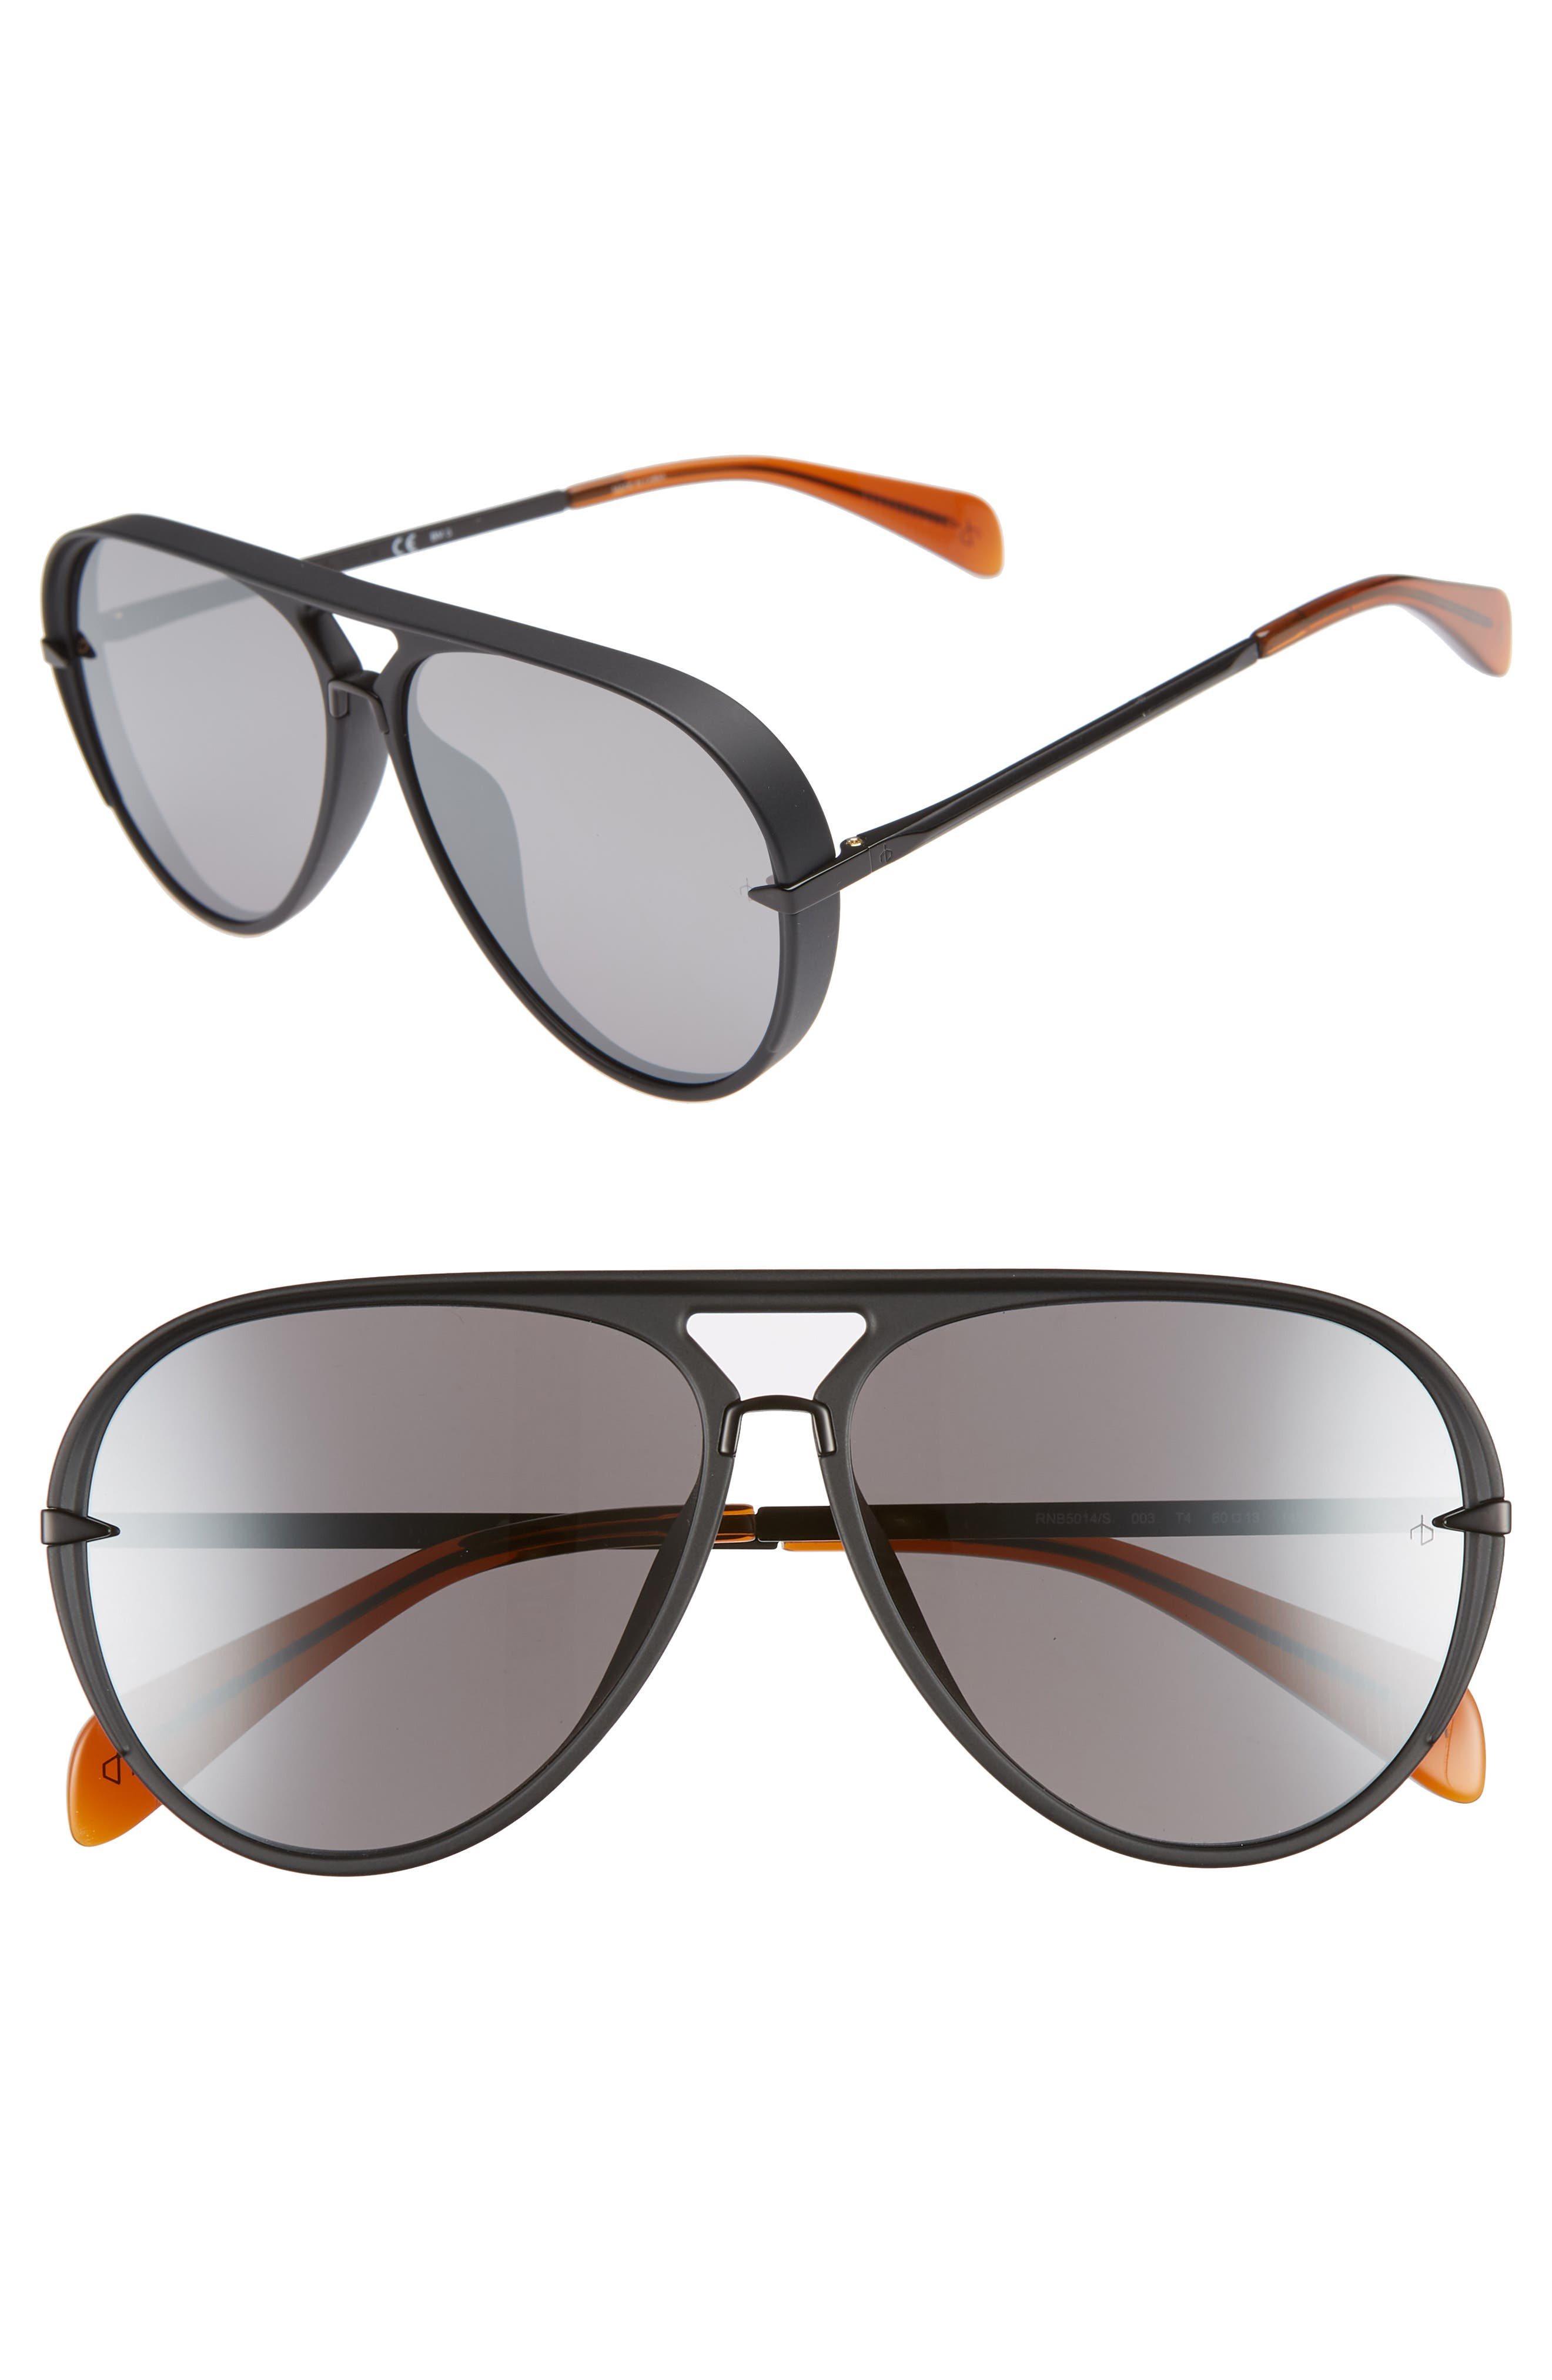 RAG & BONE, 60mm Mirrored Aviator Sunglasses, Main thumbnail 1, color, MATTE BLACK